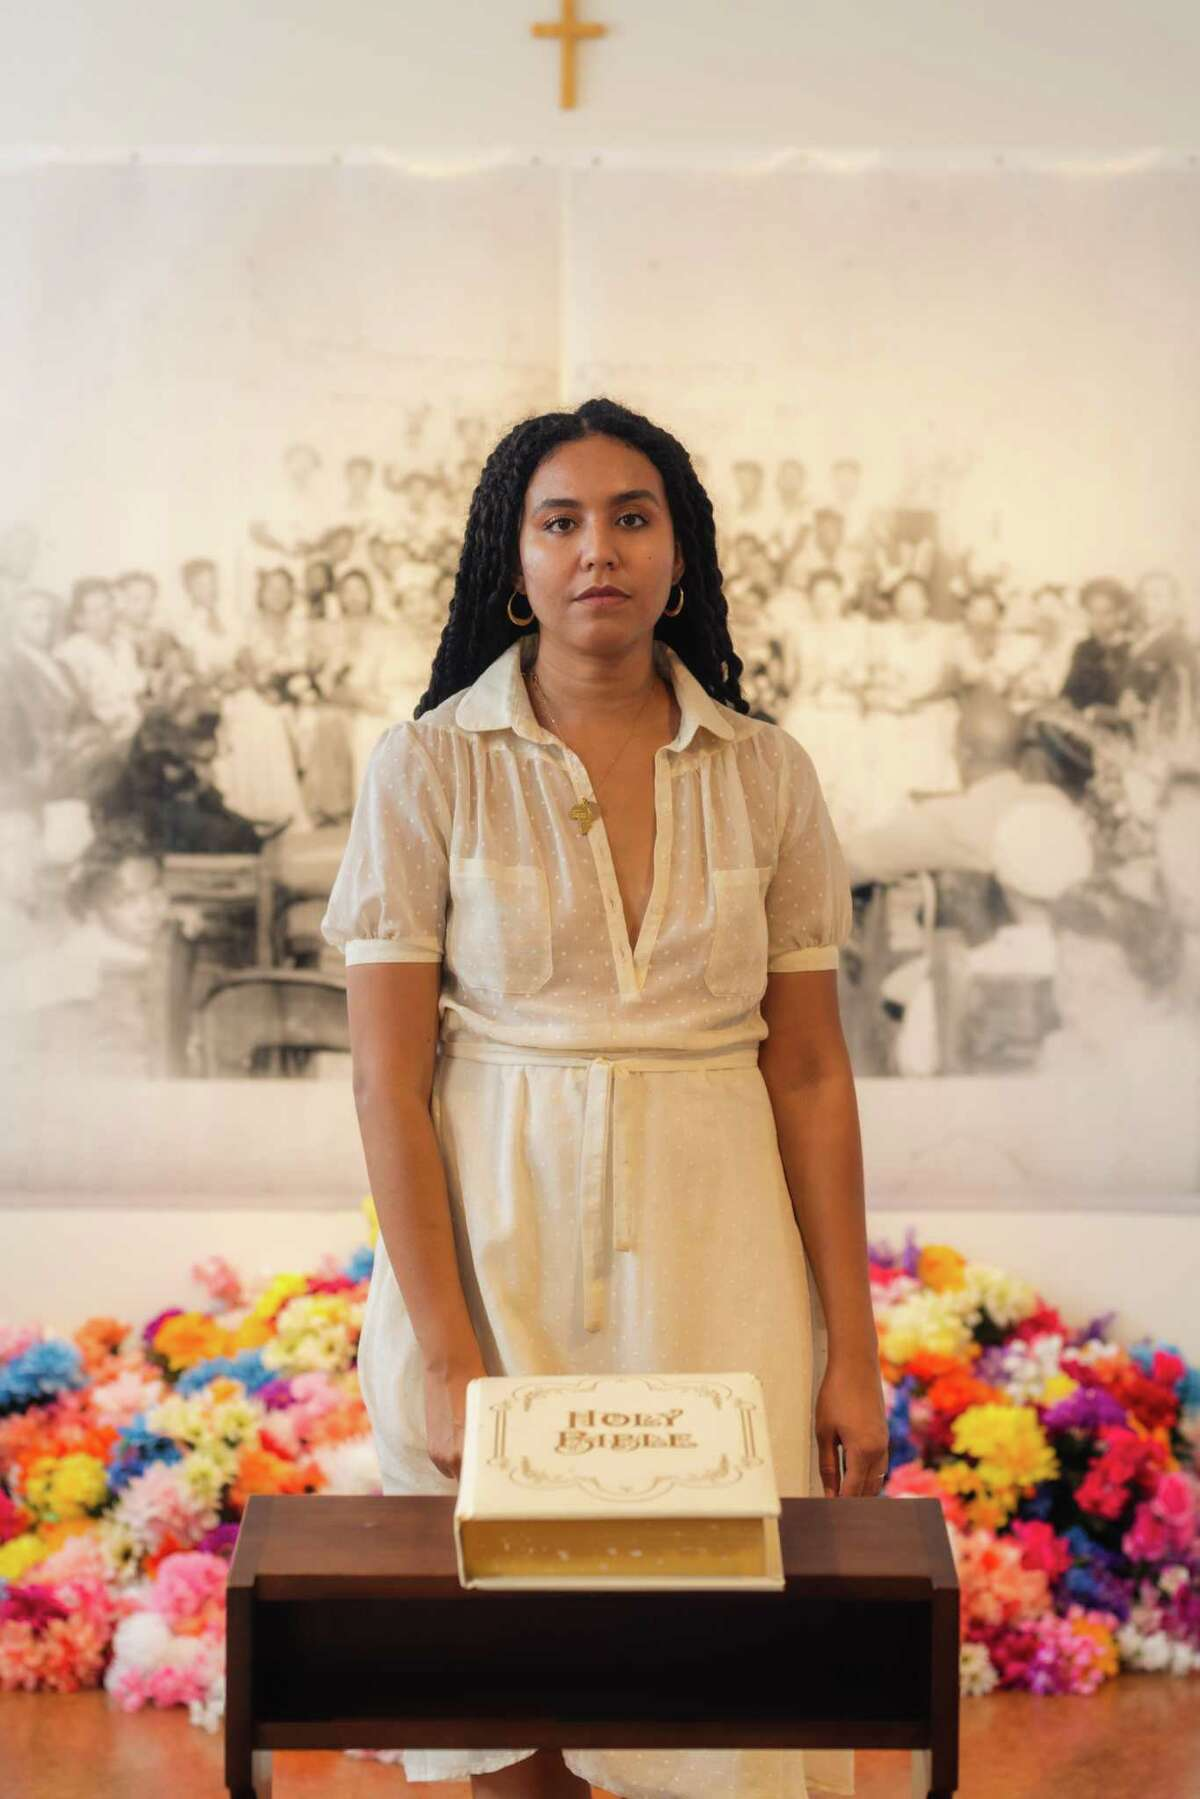 """Artist Irene Antonia Diane Reece's installation """"Home-goings"""" will be installed at the McNay Art Museum as part of the 2021 Texas Biennial exhibition."""